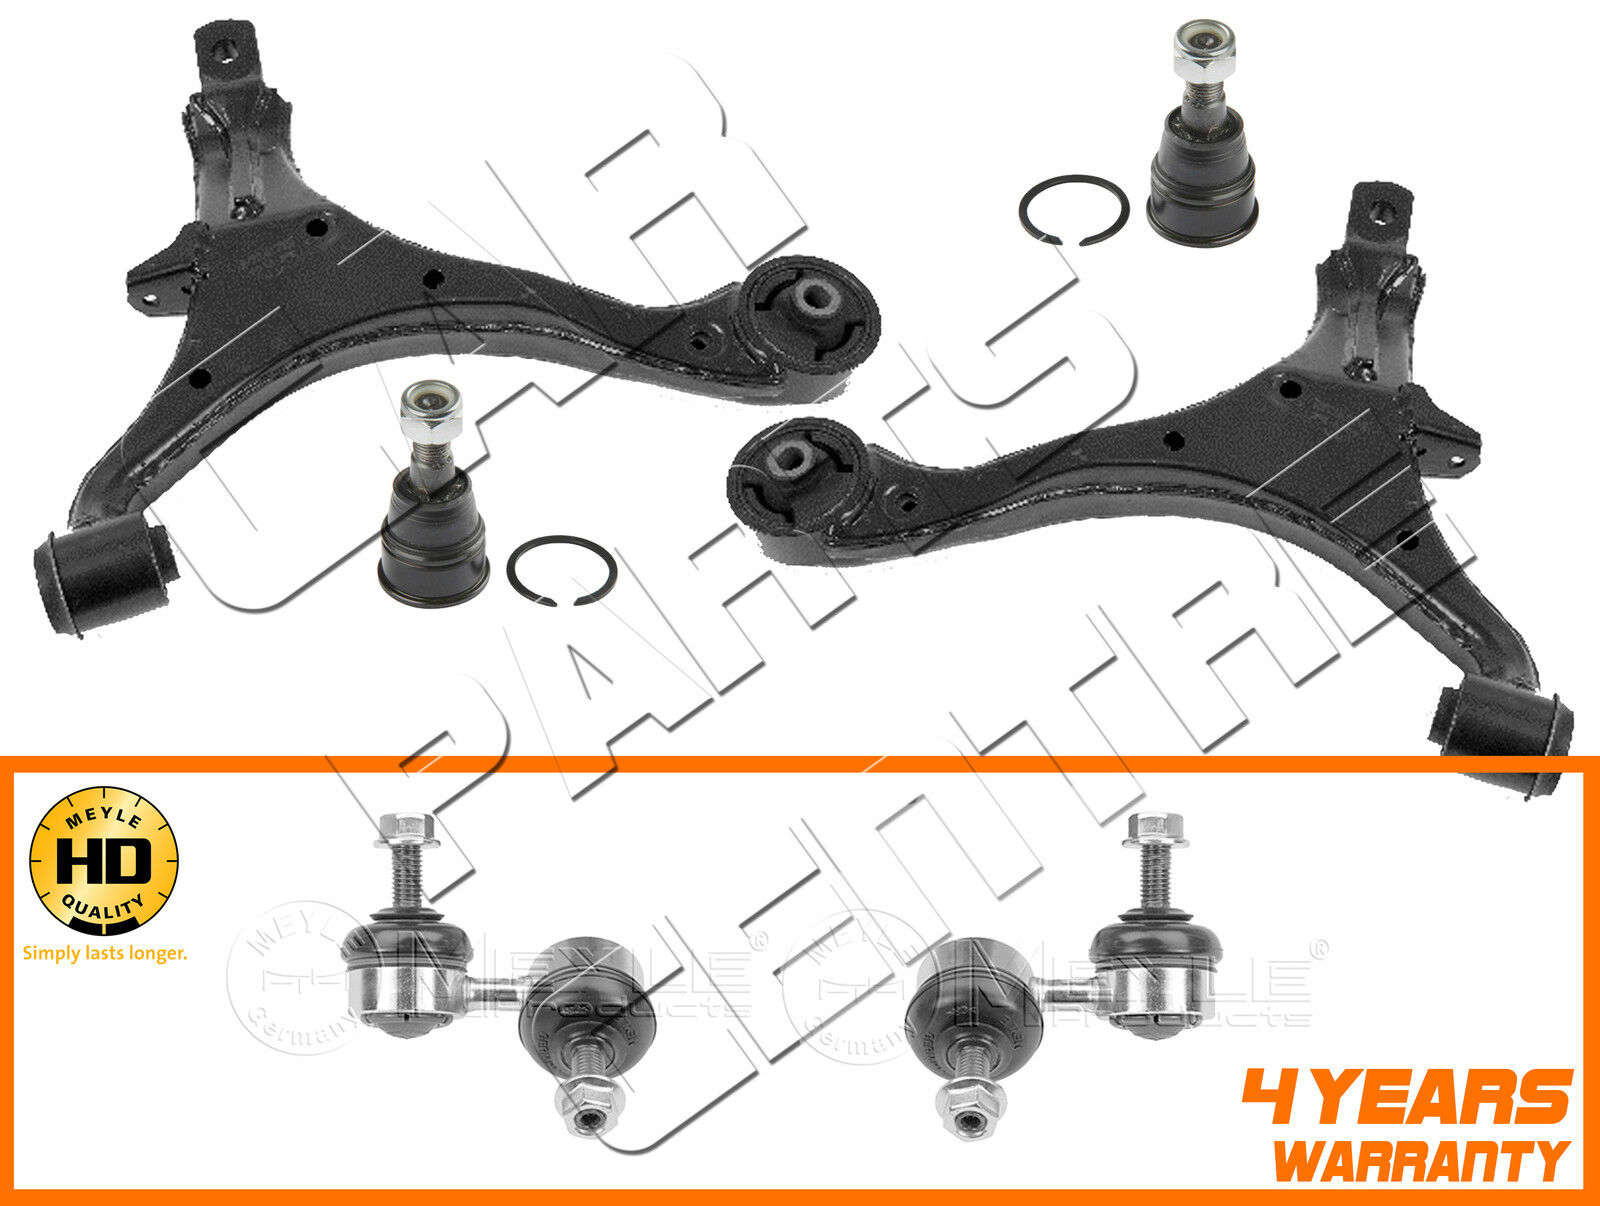 VAUXHALL ASTRA 98/> 06 FRONT LOWER WISHBONES BALL JOINTS LINKS /& TIE ROD ENDS KIT